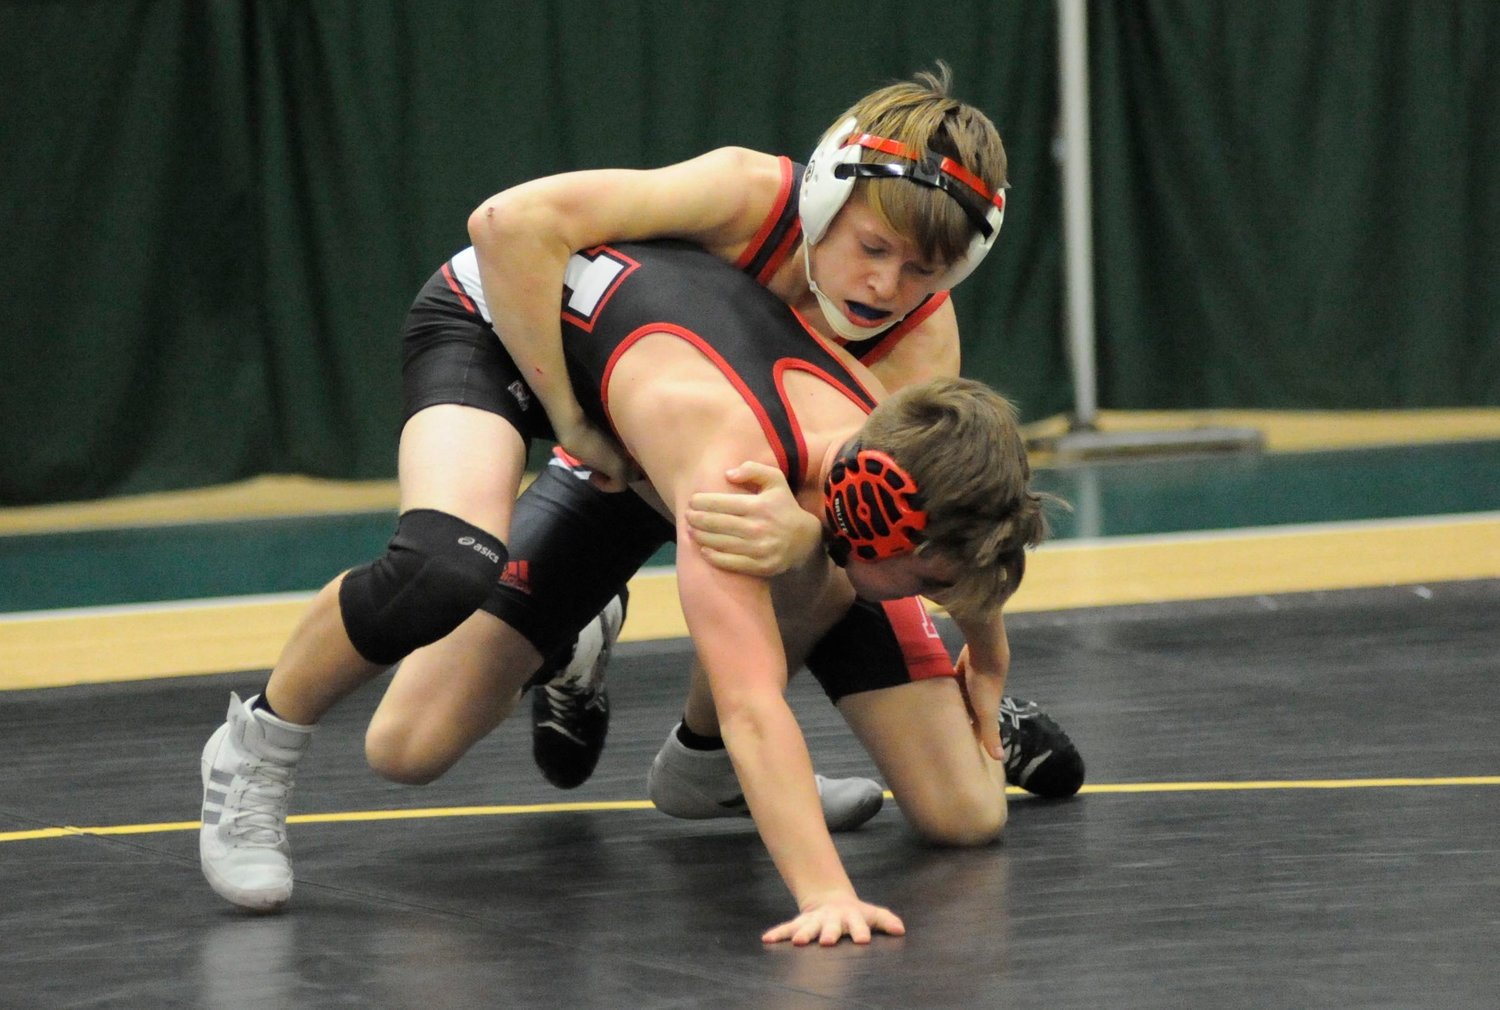 Onteora's Steven Blakely won the 113-pound weight class match over Quintin Herzog of Liberty.